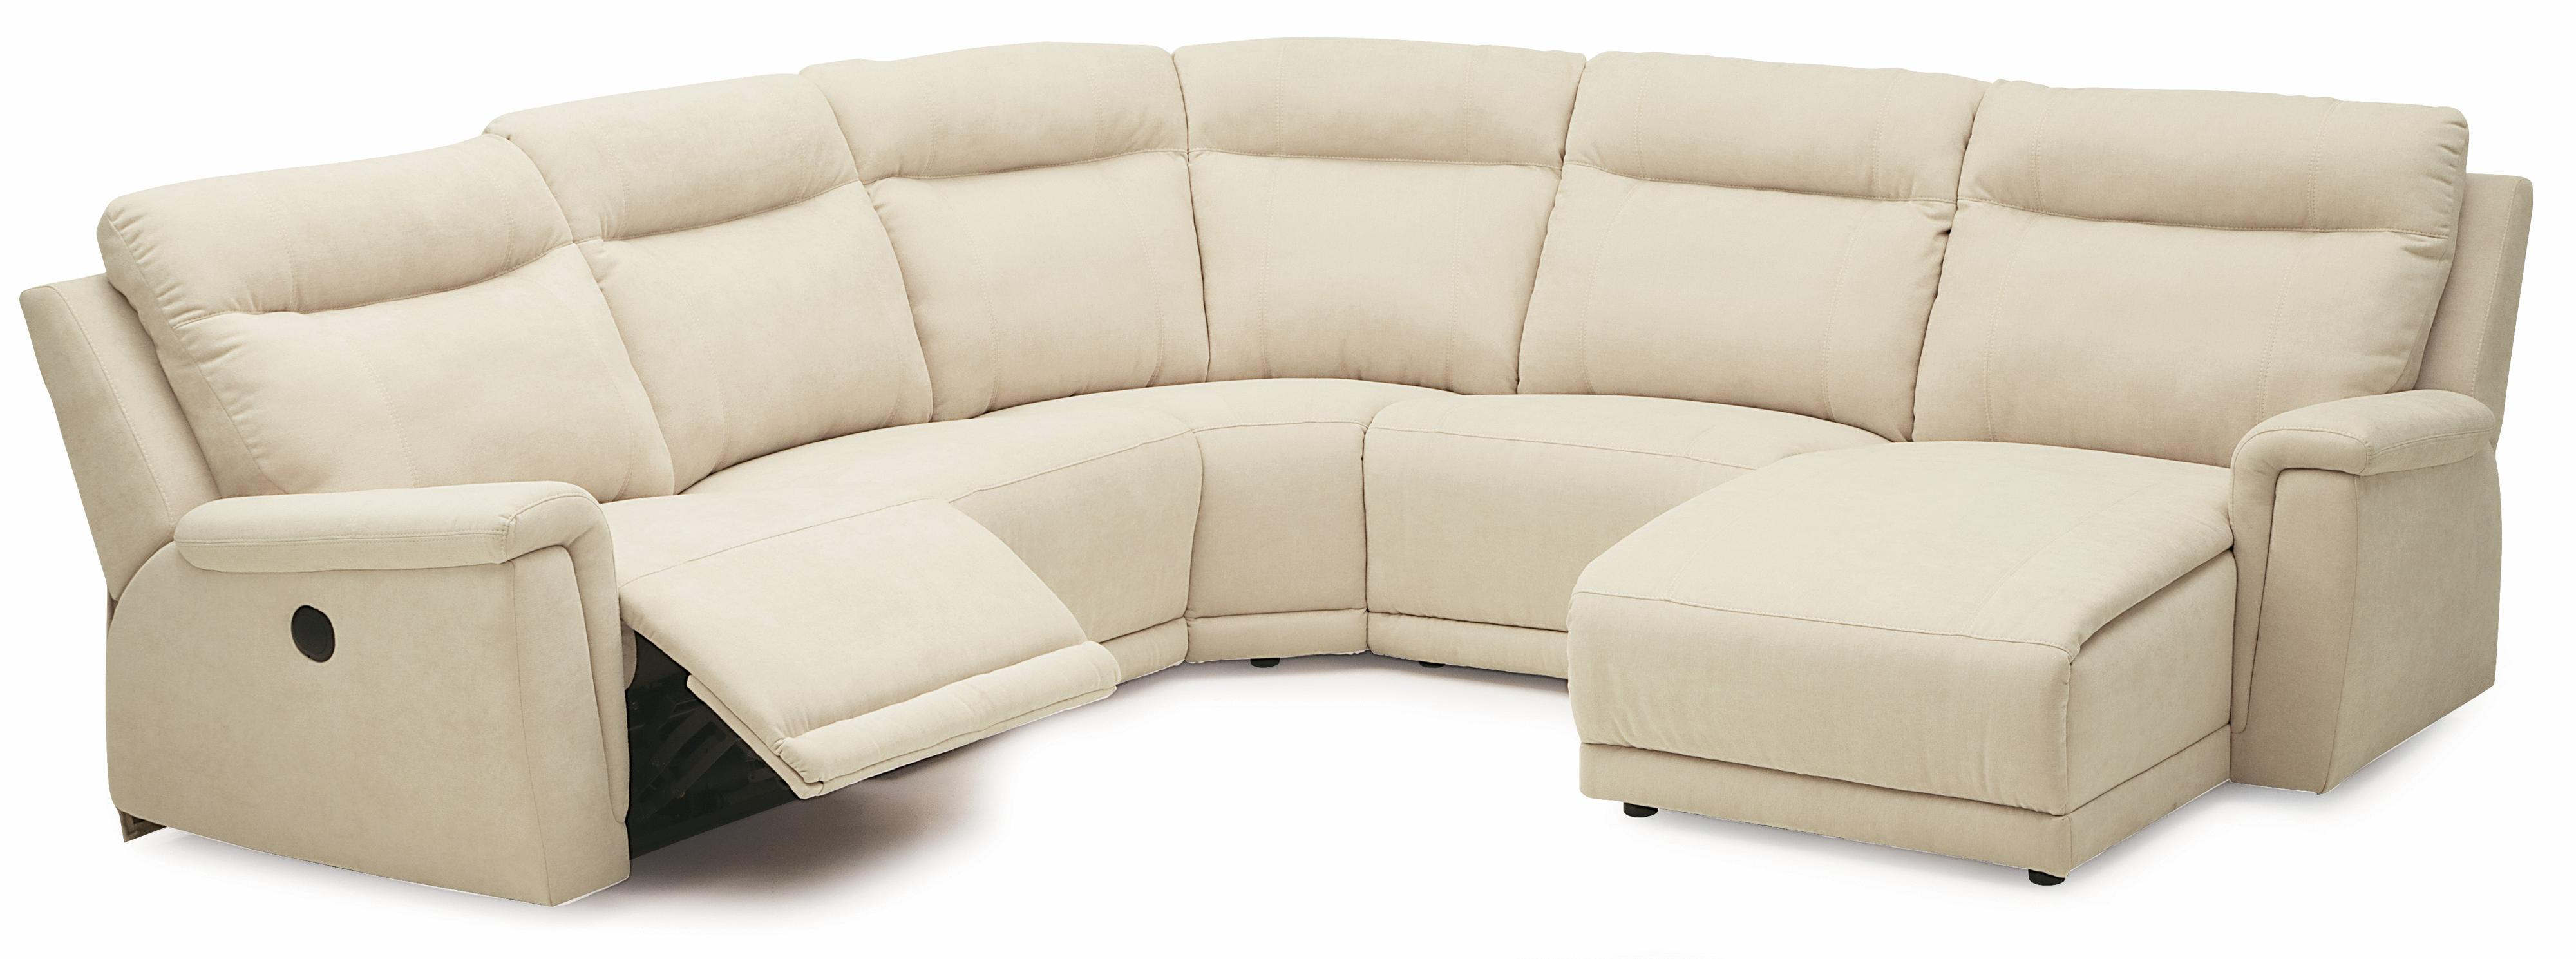 Westpoint RHF Sectional w/ Chaise by Palliser at Jordan's Home Furnishings